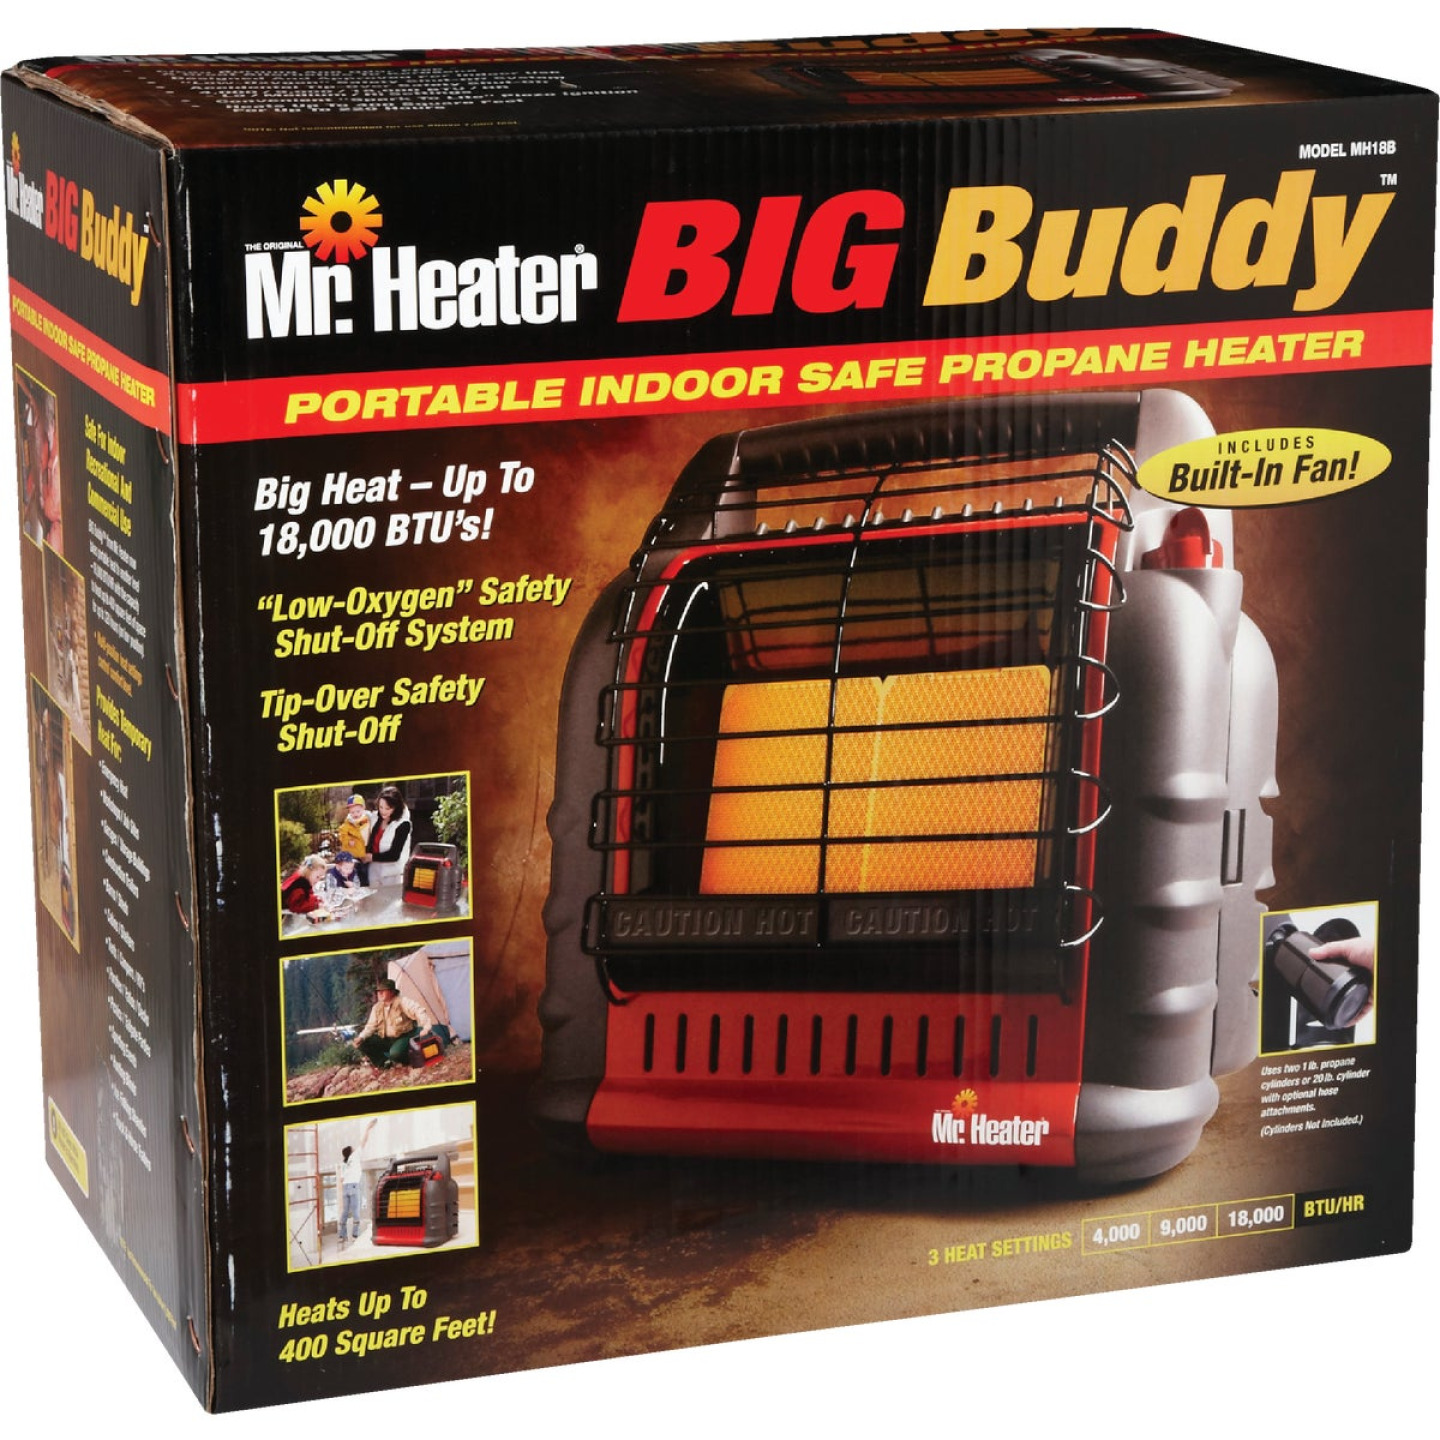 MR. HEATER 18,000 BTU Radiant Big Buddy Propane Heater Image 7